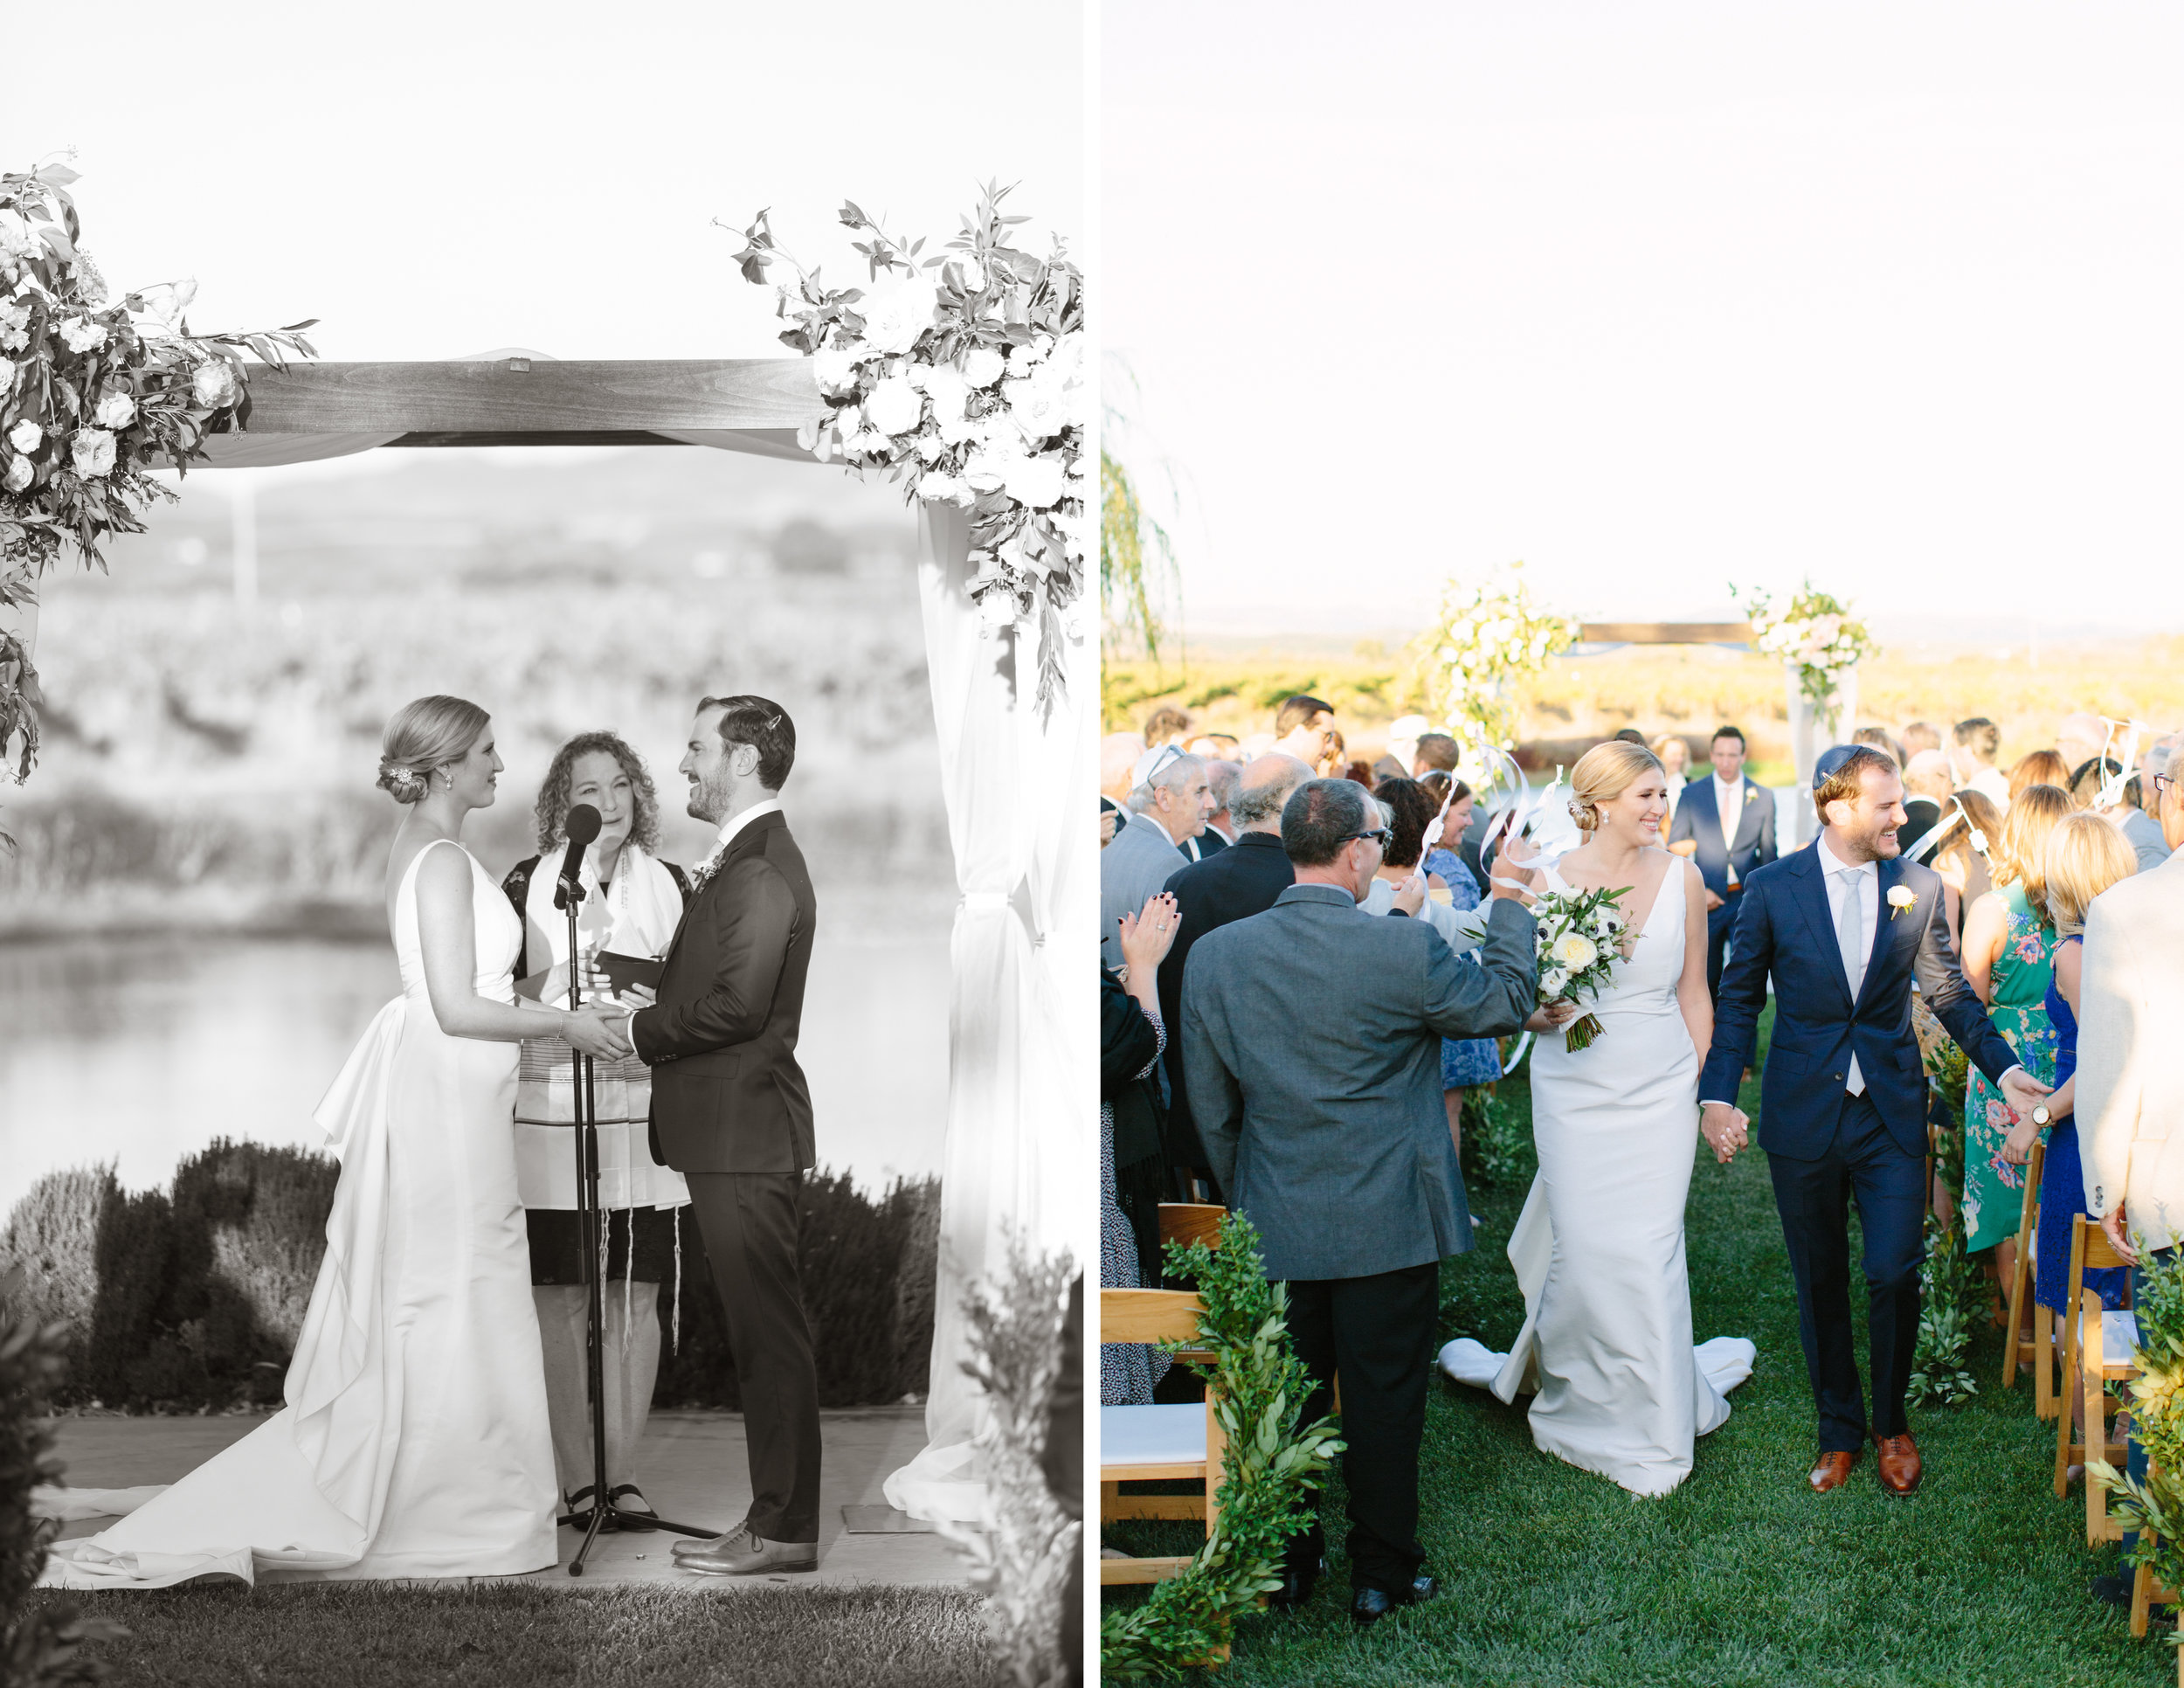 sonoma modern barn wedding 12.jpg